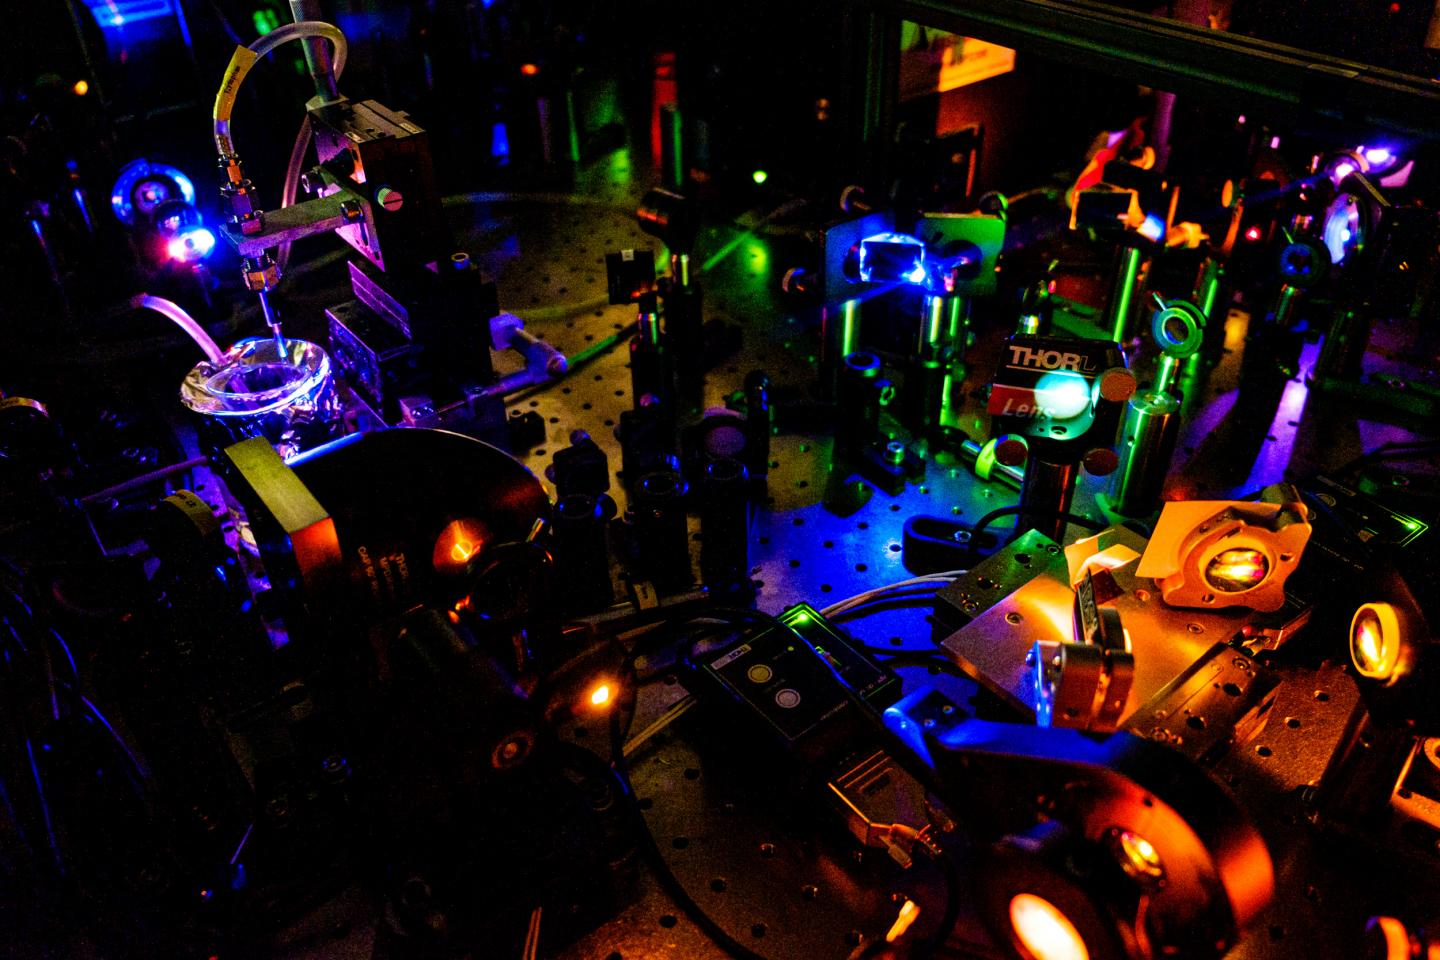 NTU Experiments Conducted on Tabletop Laser Equipment for Fundamental Chemistry